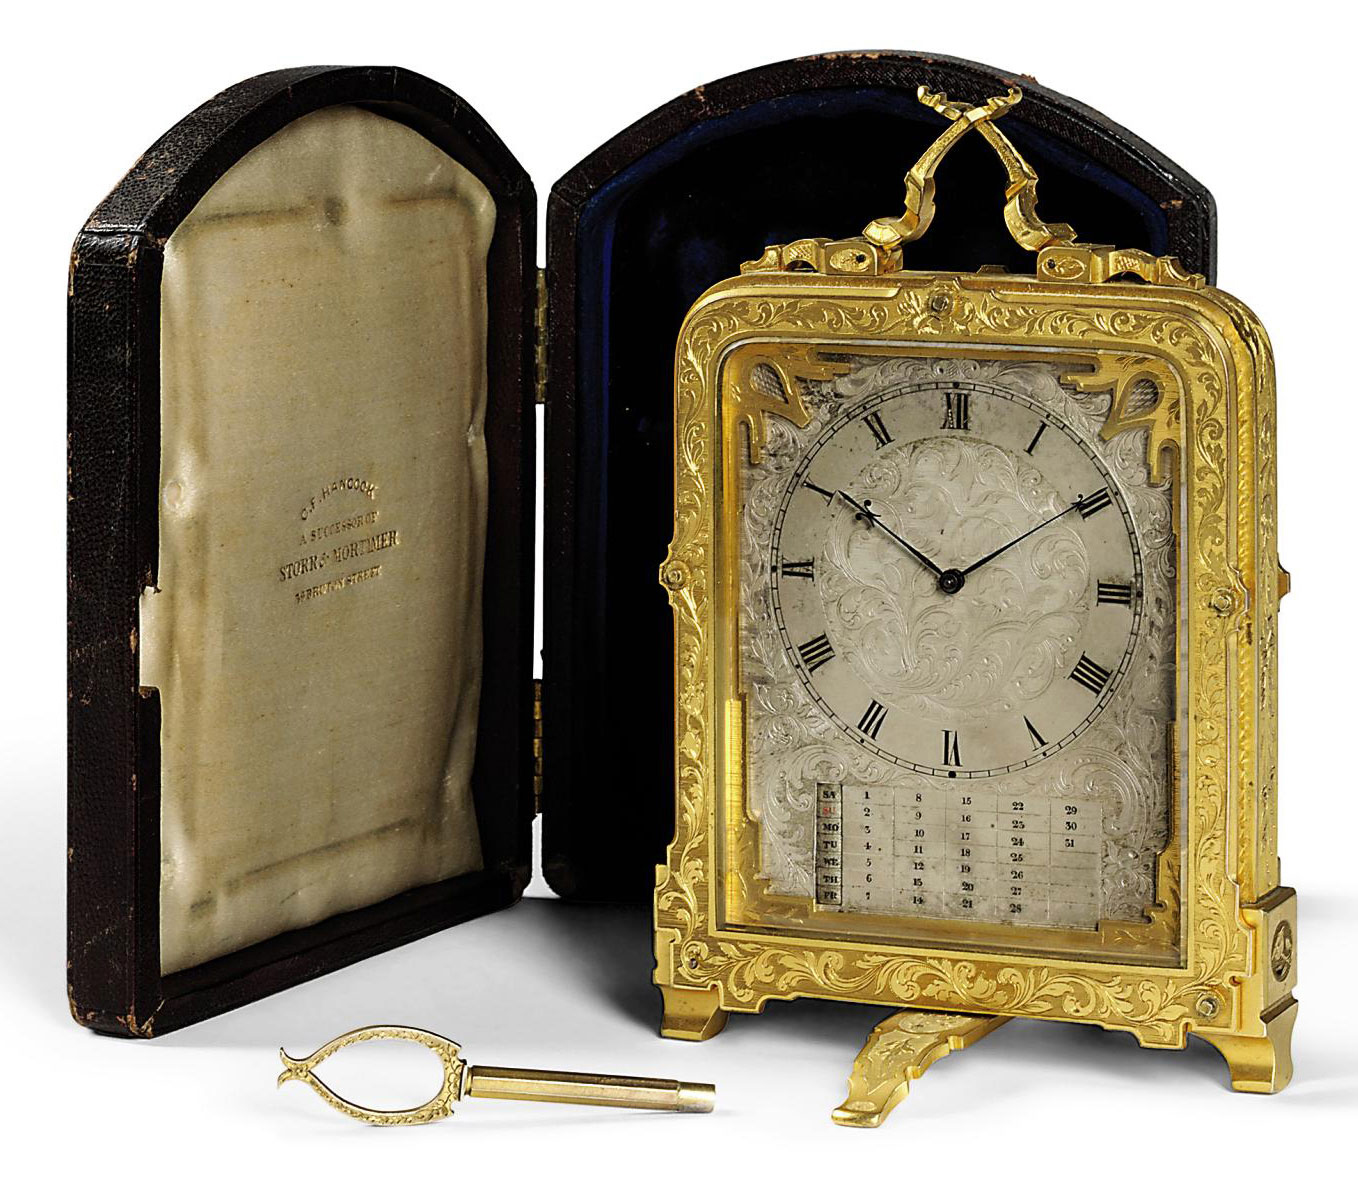 A VICTORIAN ENGRAVED GILT-BRASS EIGHT DAY TIMEPIECE STRUT CLOCK WITH MANUAL MONTHLY CALENDAR